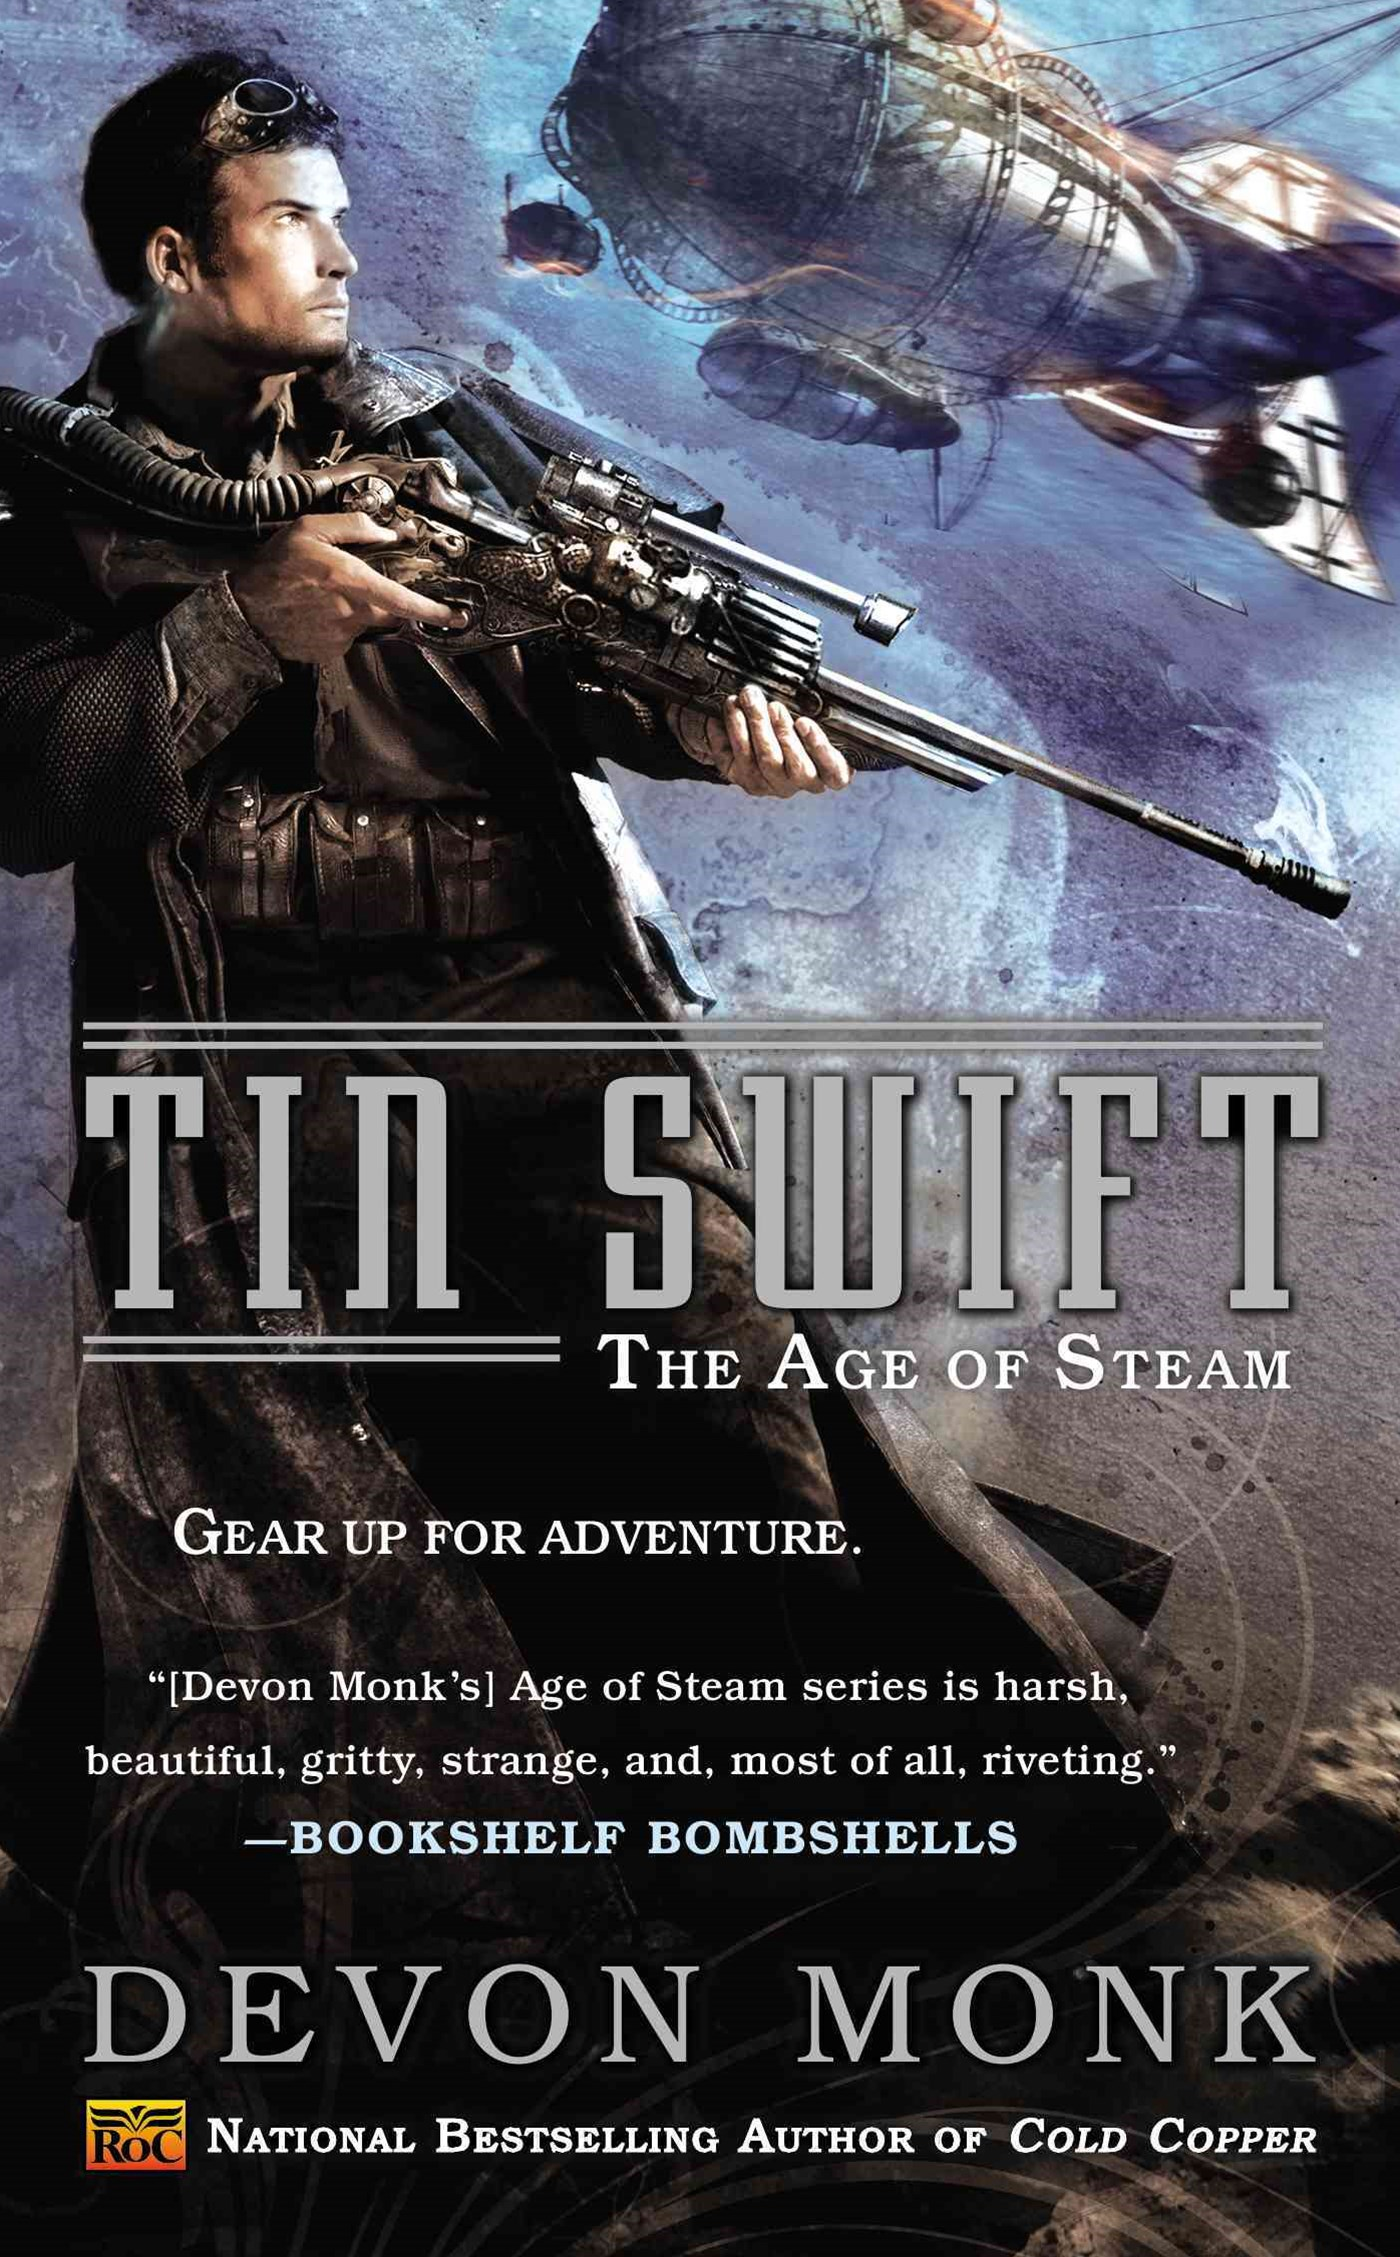 Tin Swift: The Age Of Steam Book 2